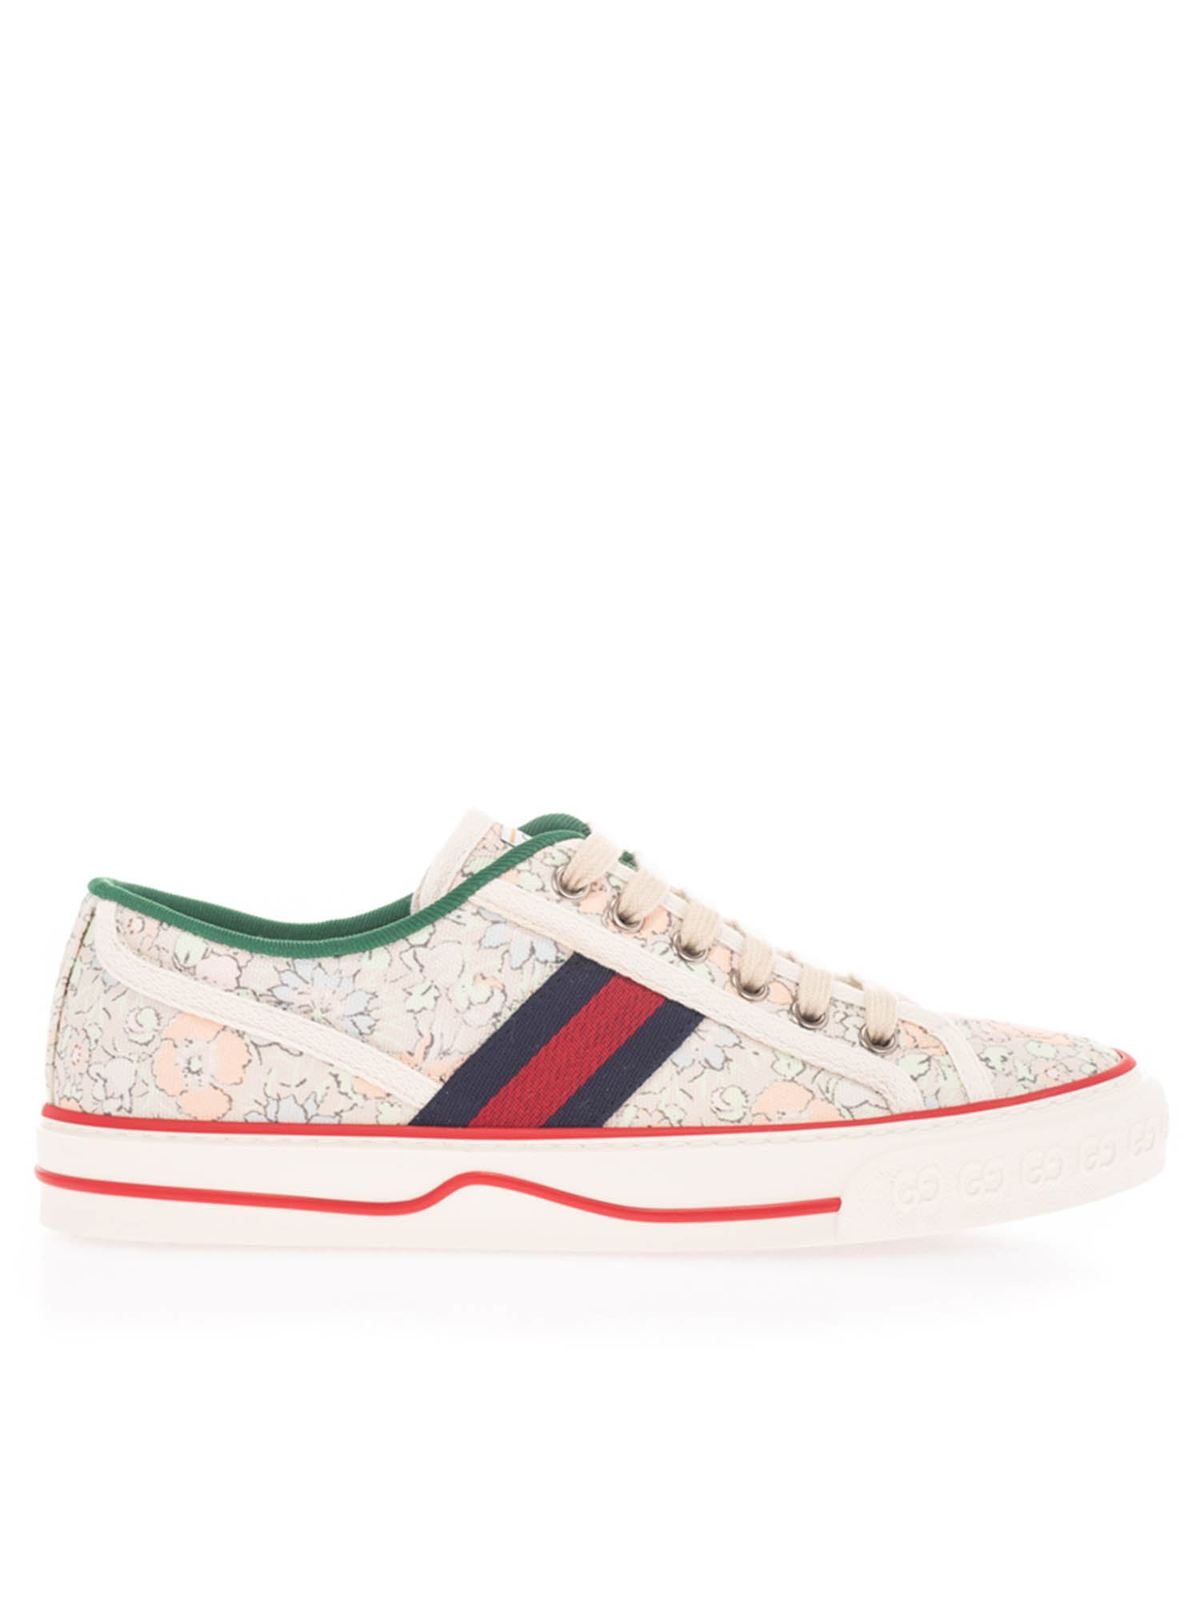 Gucci Sneakers SNEAKERS IN MULTICOLOR